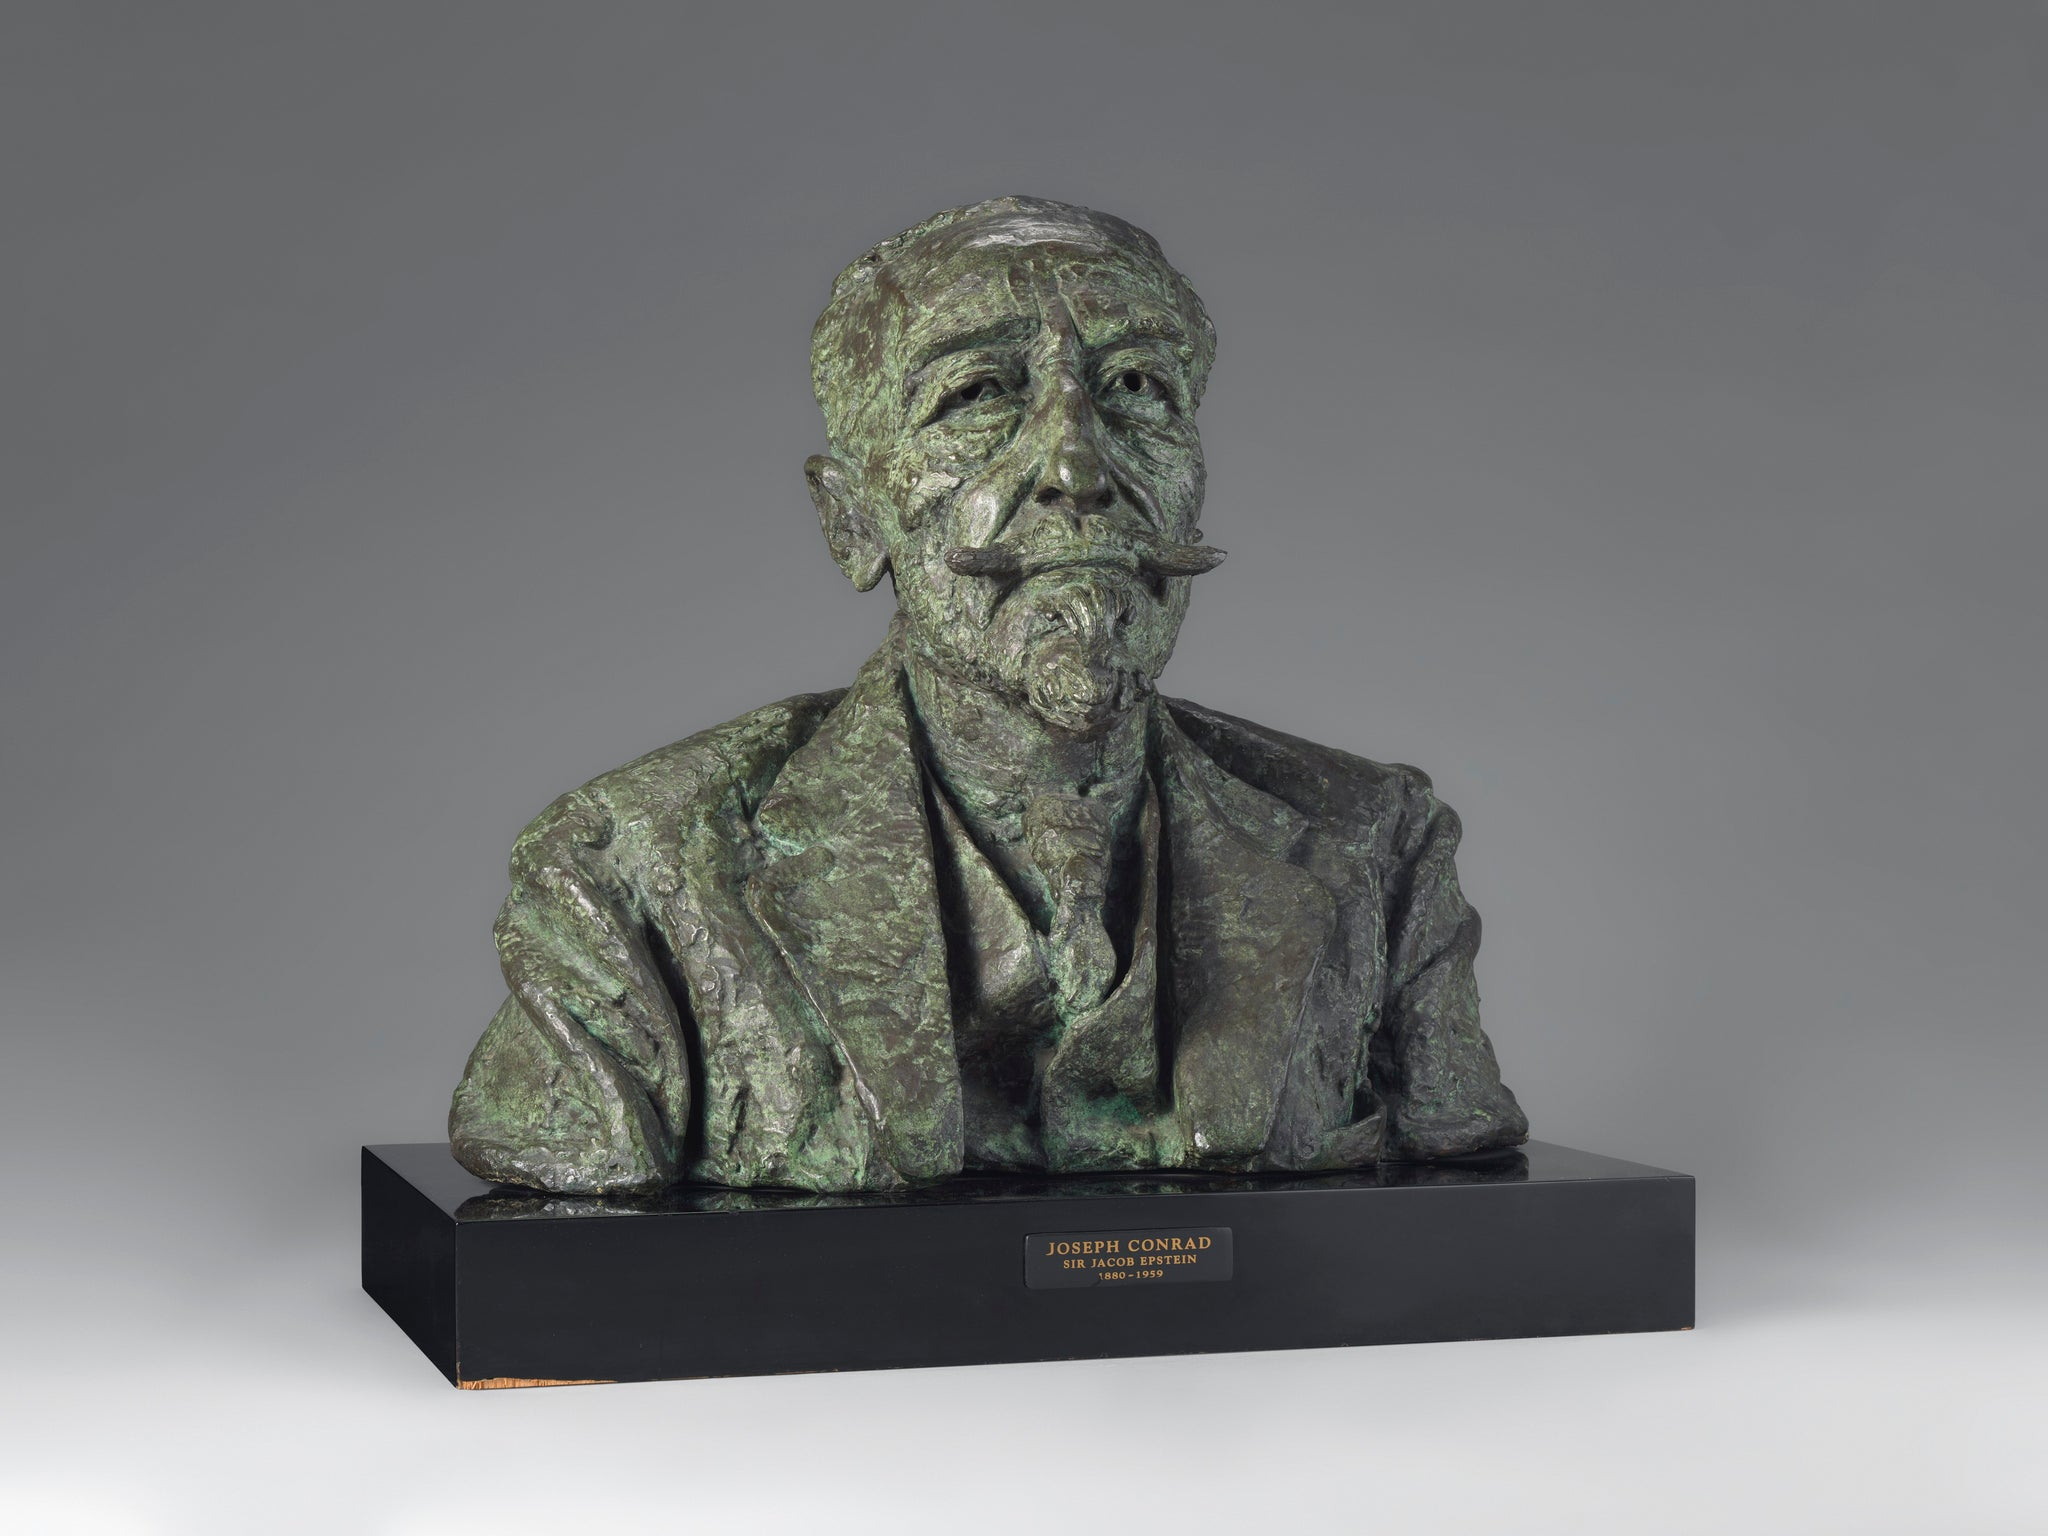 The Iconic Bronze Bust of Joseph Conrad by Sir Jacob Epstein (1880-1959)